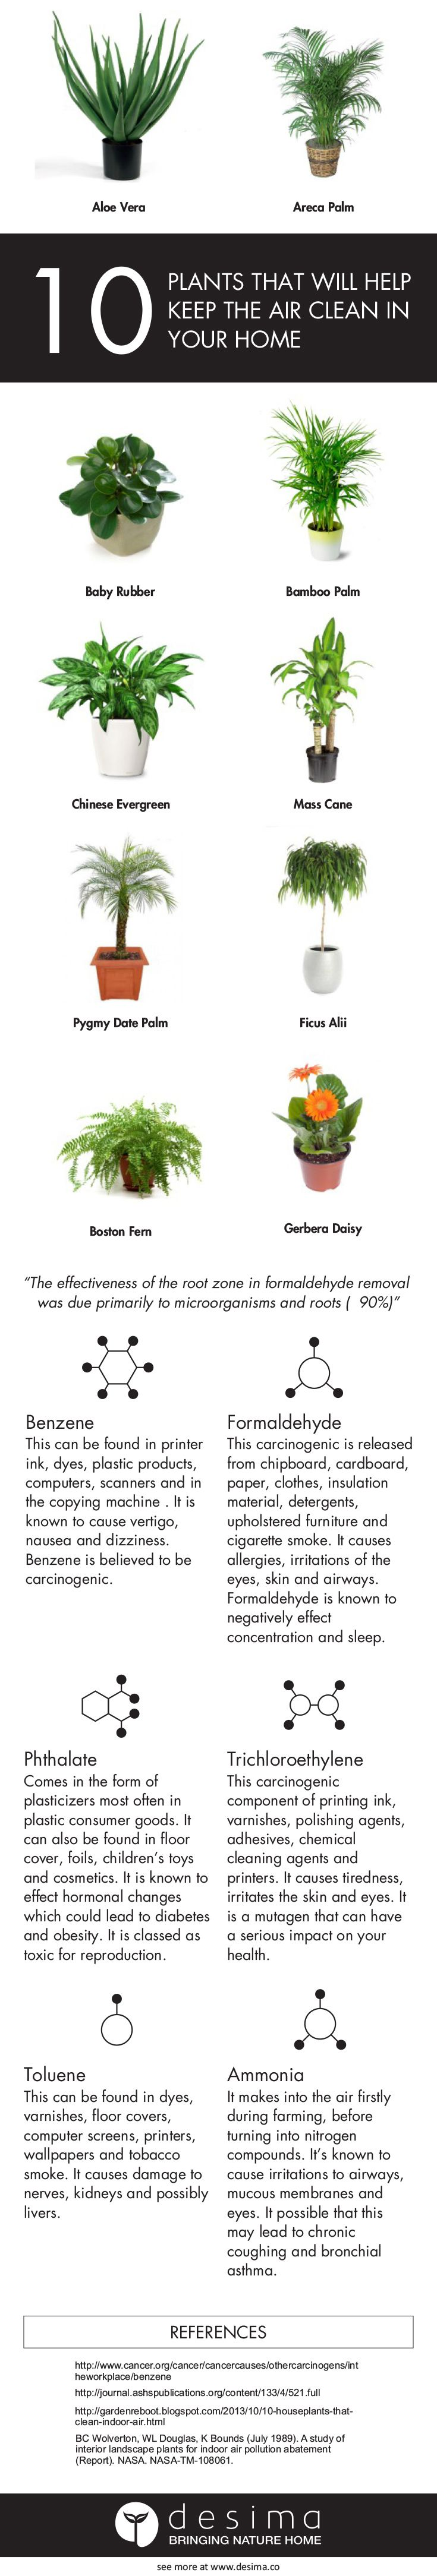 10 Plants That Will Help Keep The Air Clean In Your Home — desima